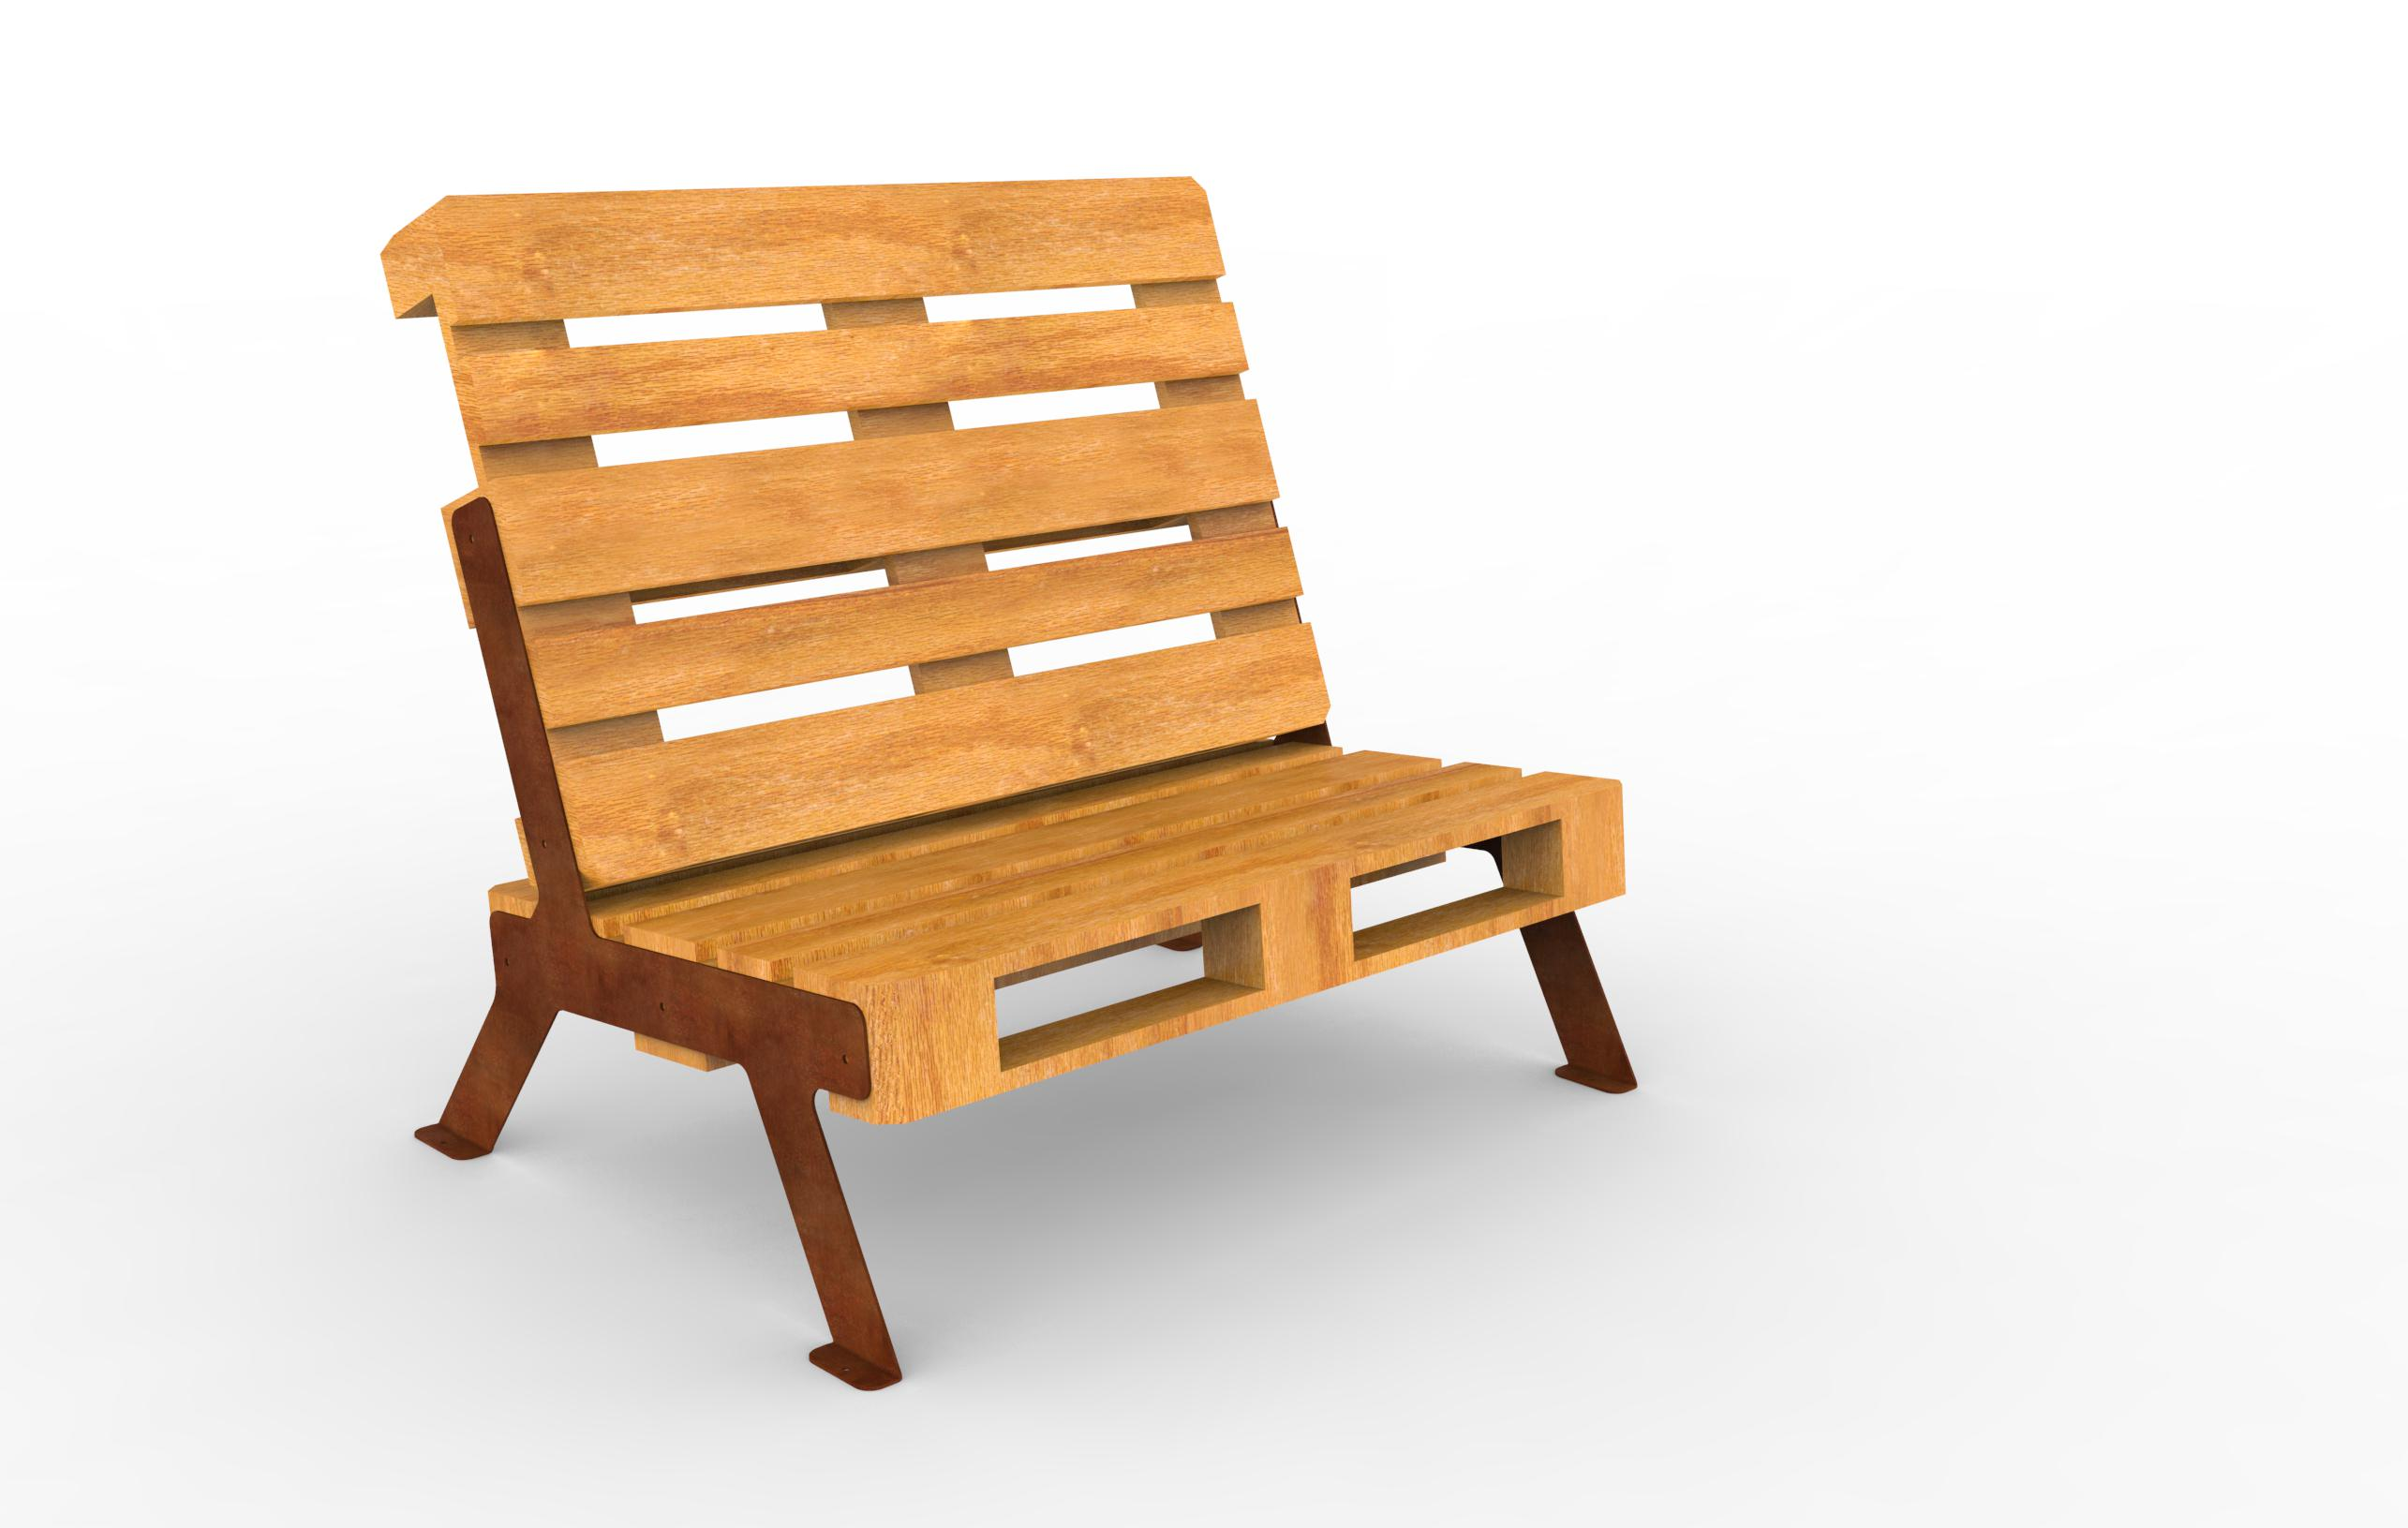 Darling pallestol | Darling Pallet Chair